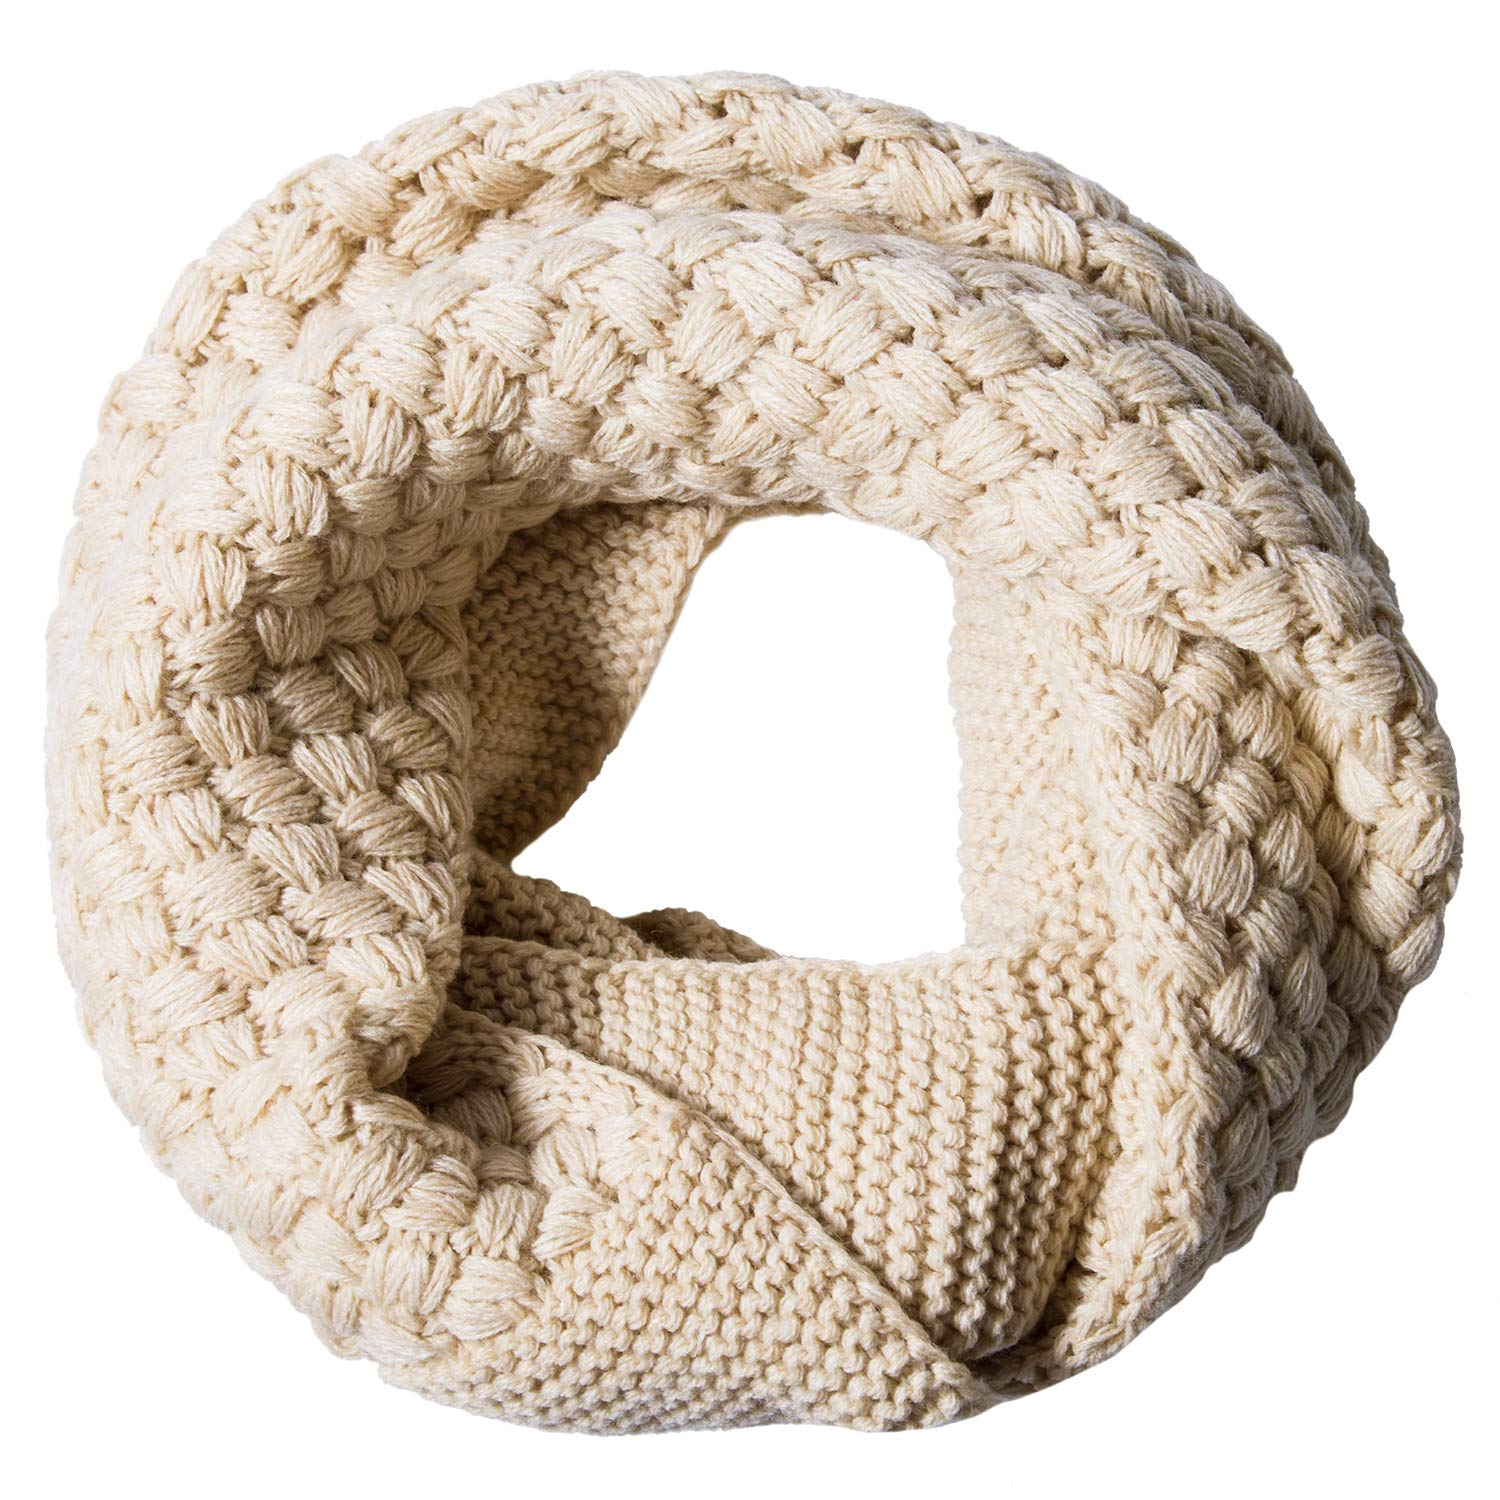 YSense Womens Winter Warm Ribbed Knit Infinity Scarf Fashion Thick Circle Loop Scarves 085-WLS-2